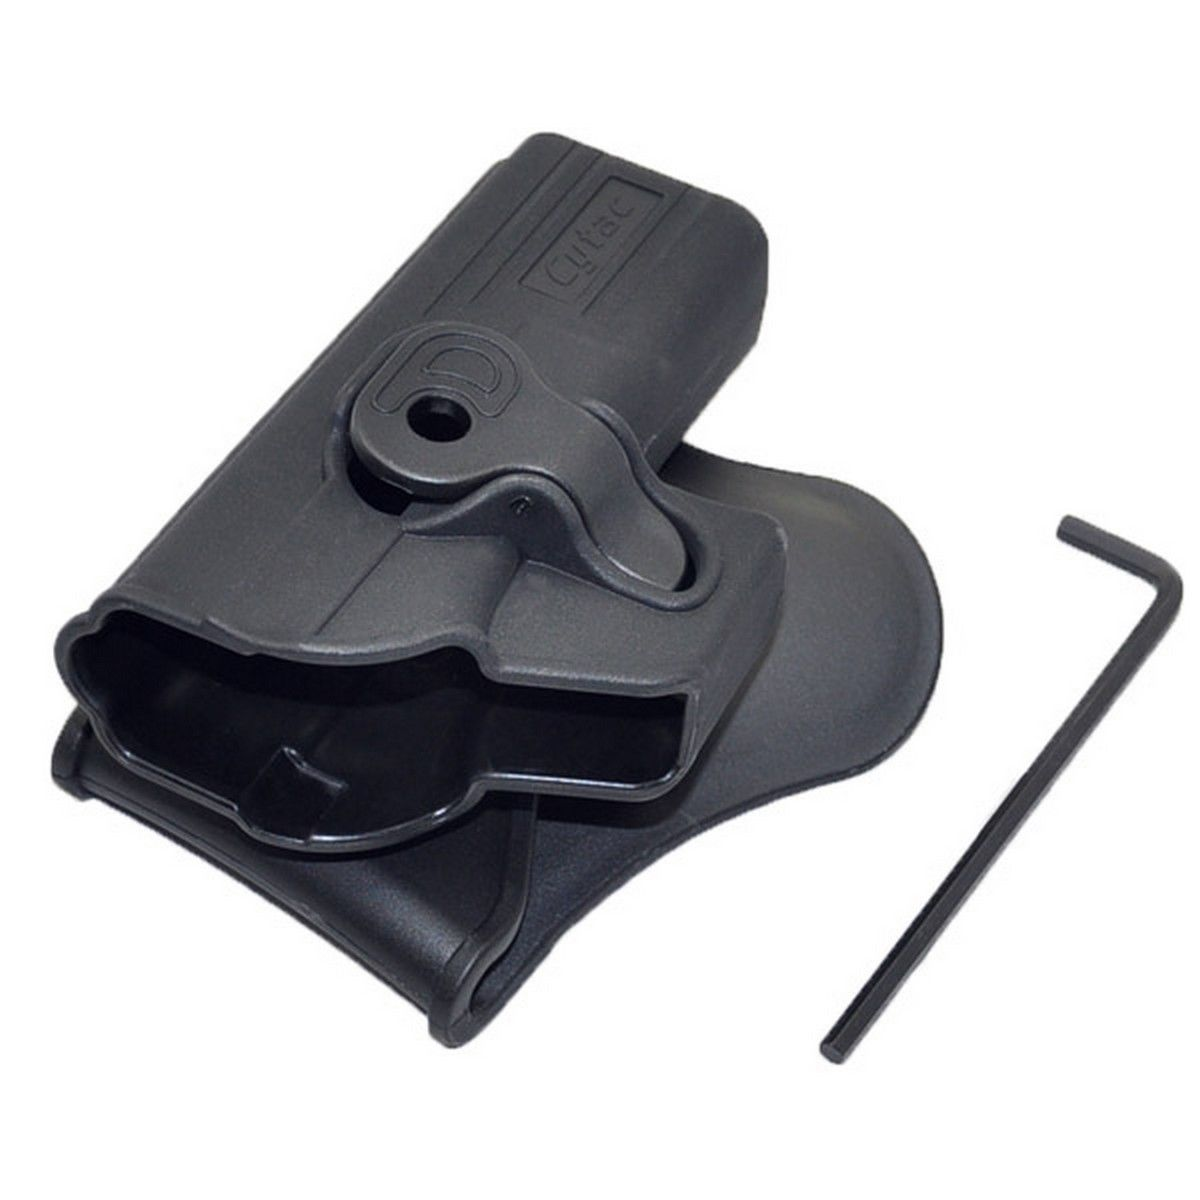 For Glock 42 Level II Retention Polymer Paddle Holster Tactical Scorpion by Tactical Scorpion Gear